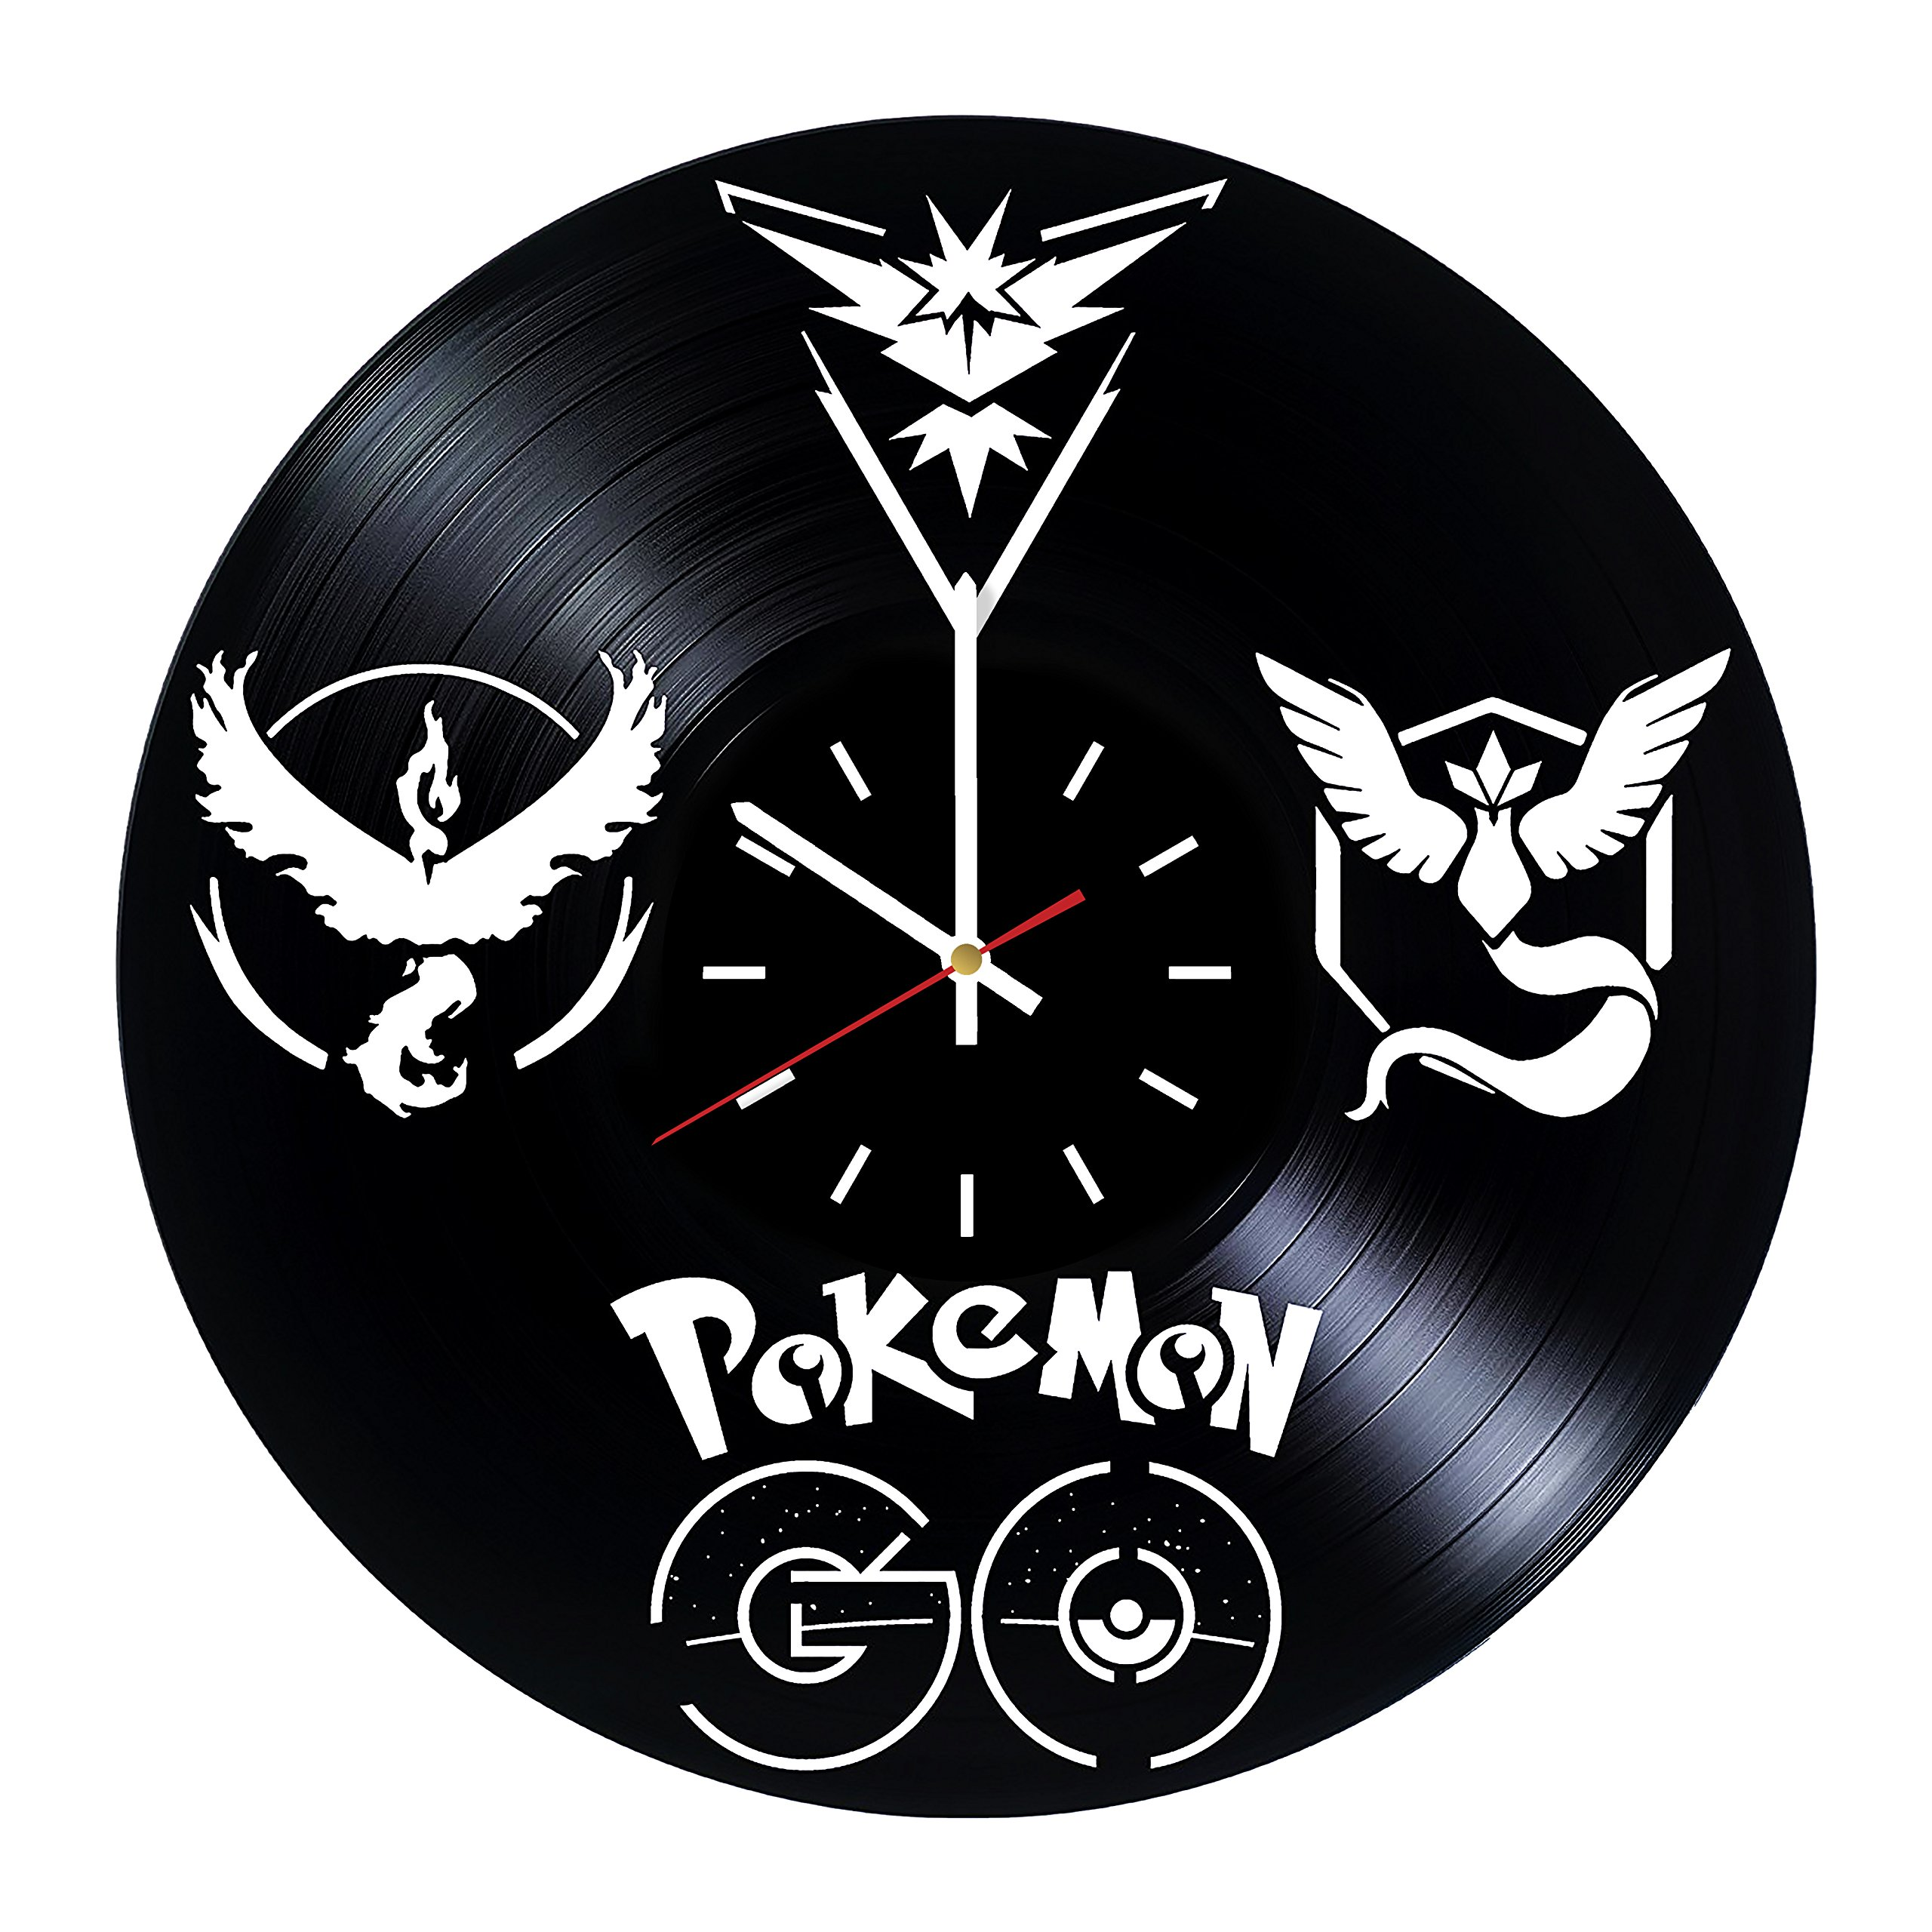 Everyday Arts Pokemon Go Game Emblems Design Vinyl Record Wall Clock - Get Unique Bedroom or Garage Wall Decor - Gift Ideas for Friends, Brother - Darth Vader Unique Modern Art